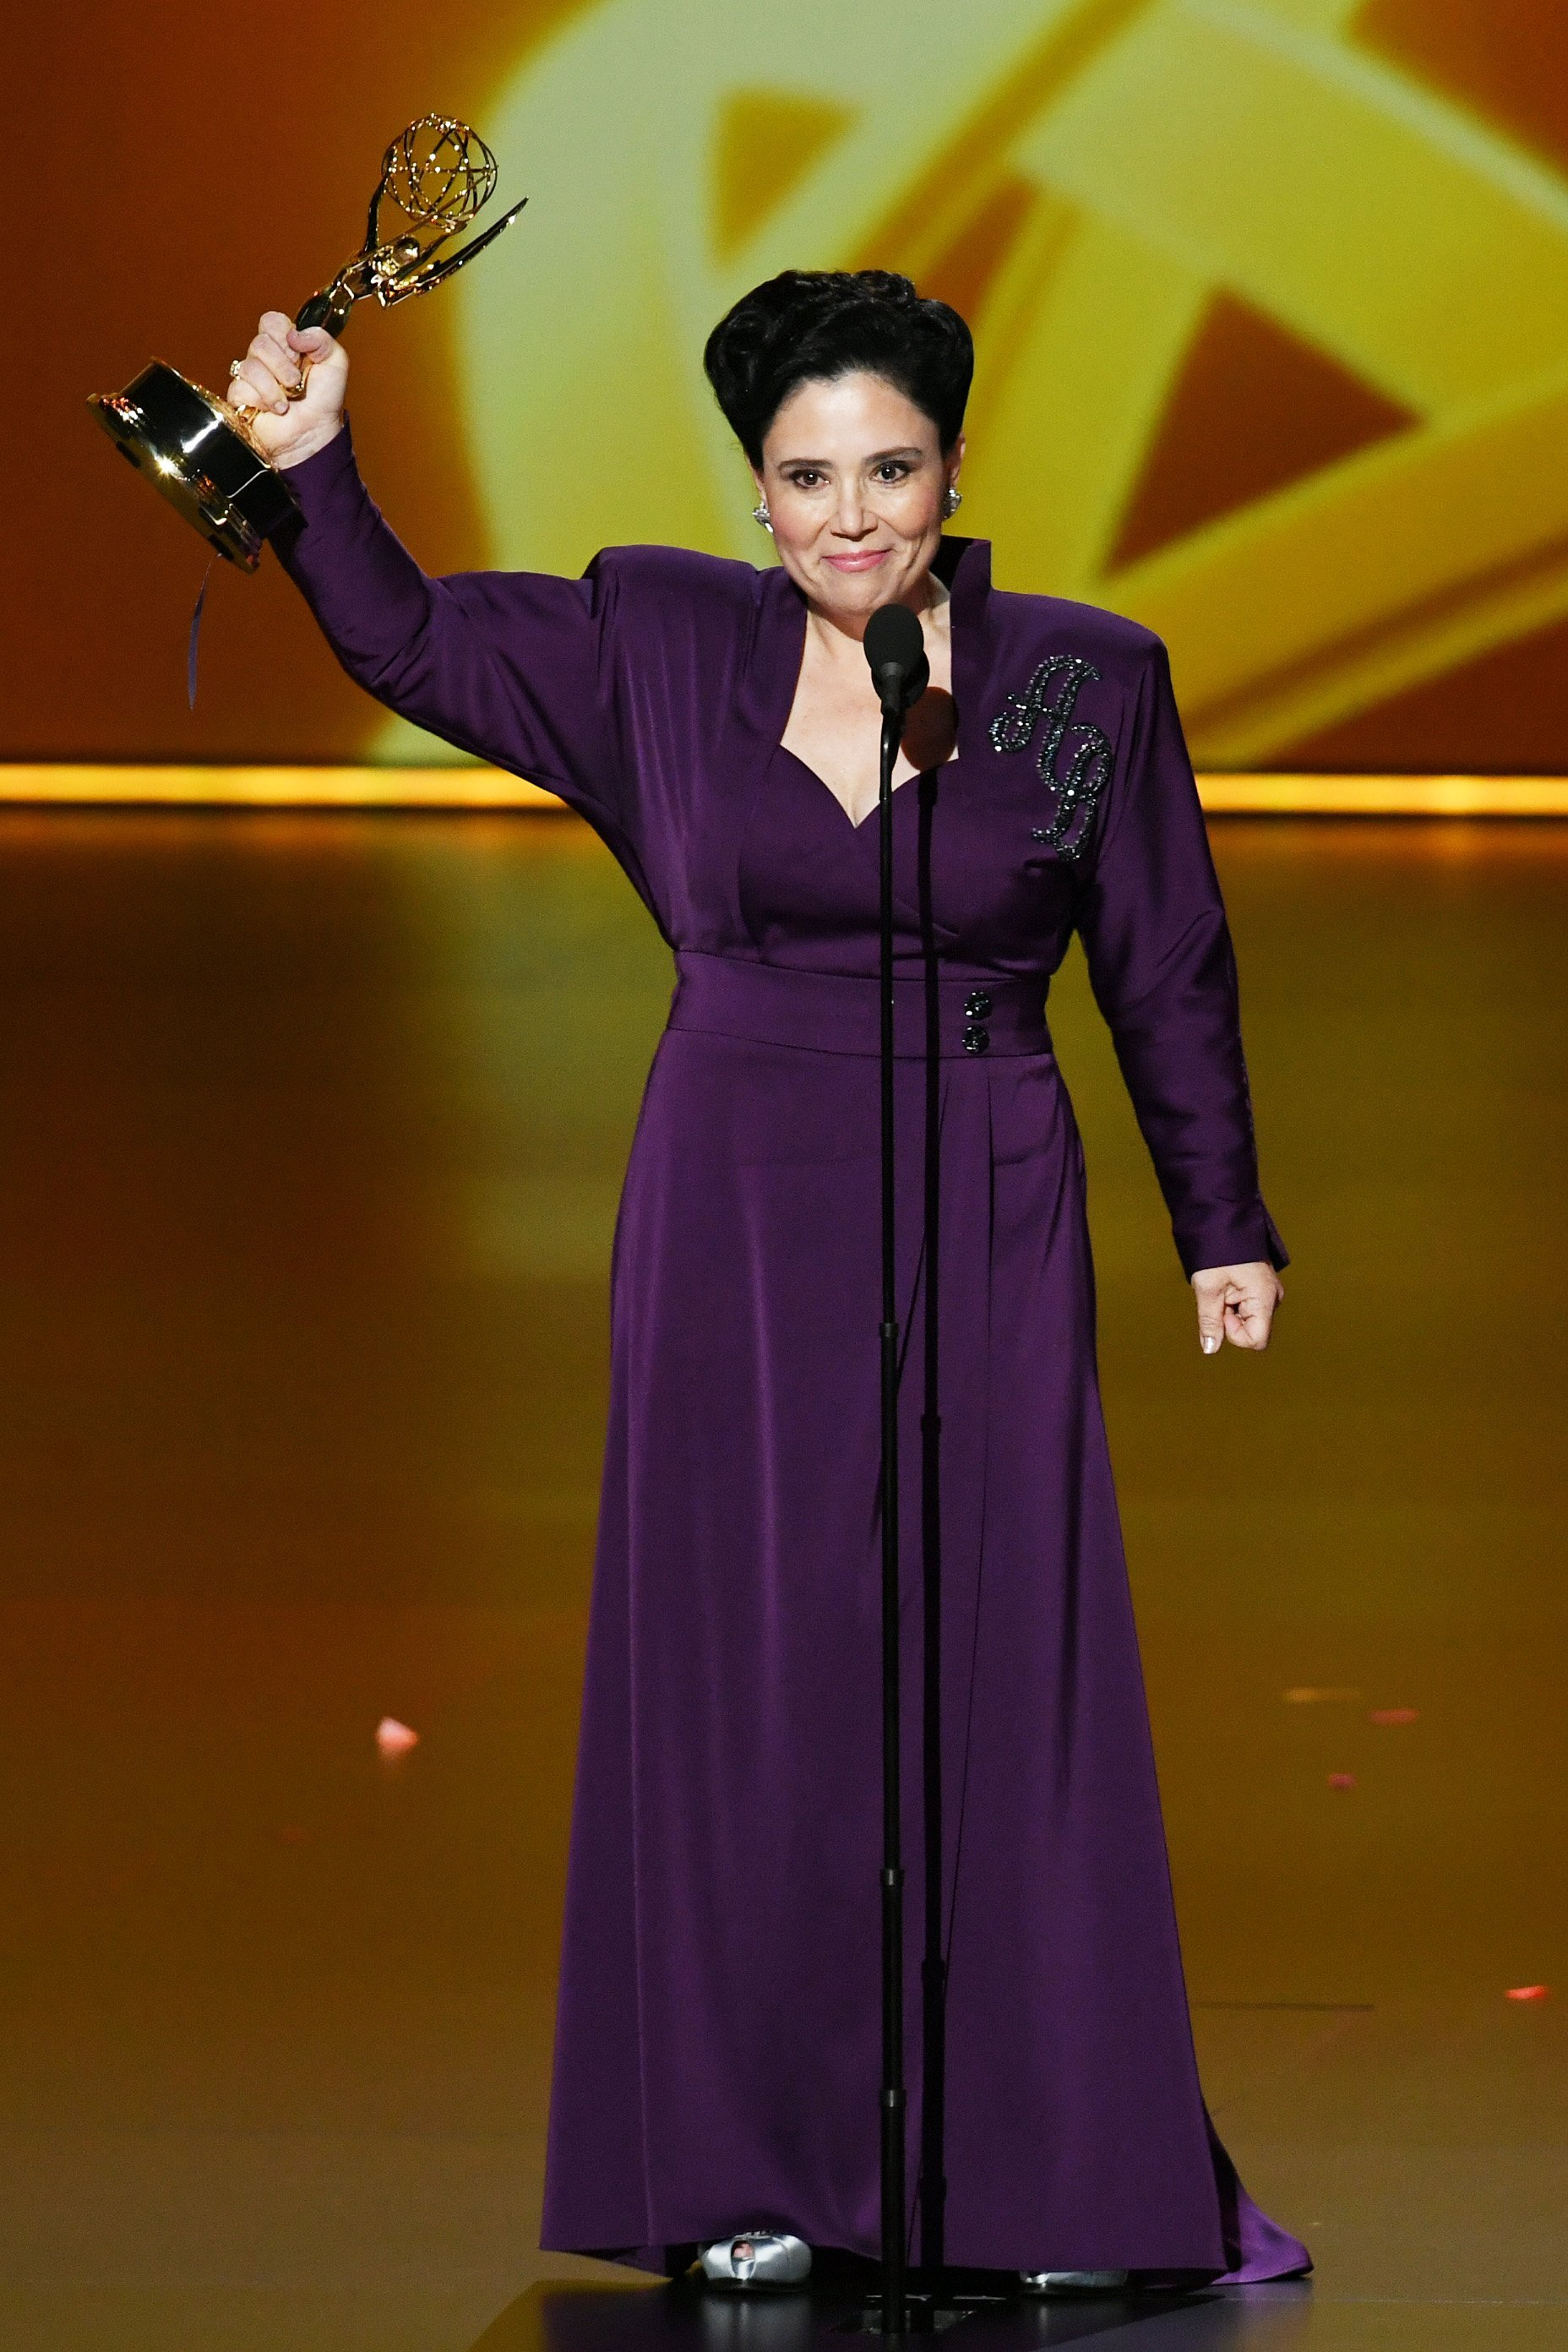 Alex Borstein calls on women to 'step out of line' in moving Emmy speech